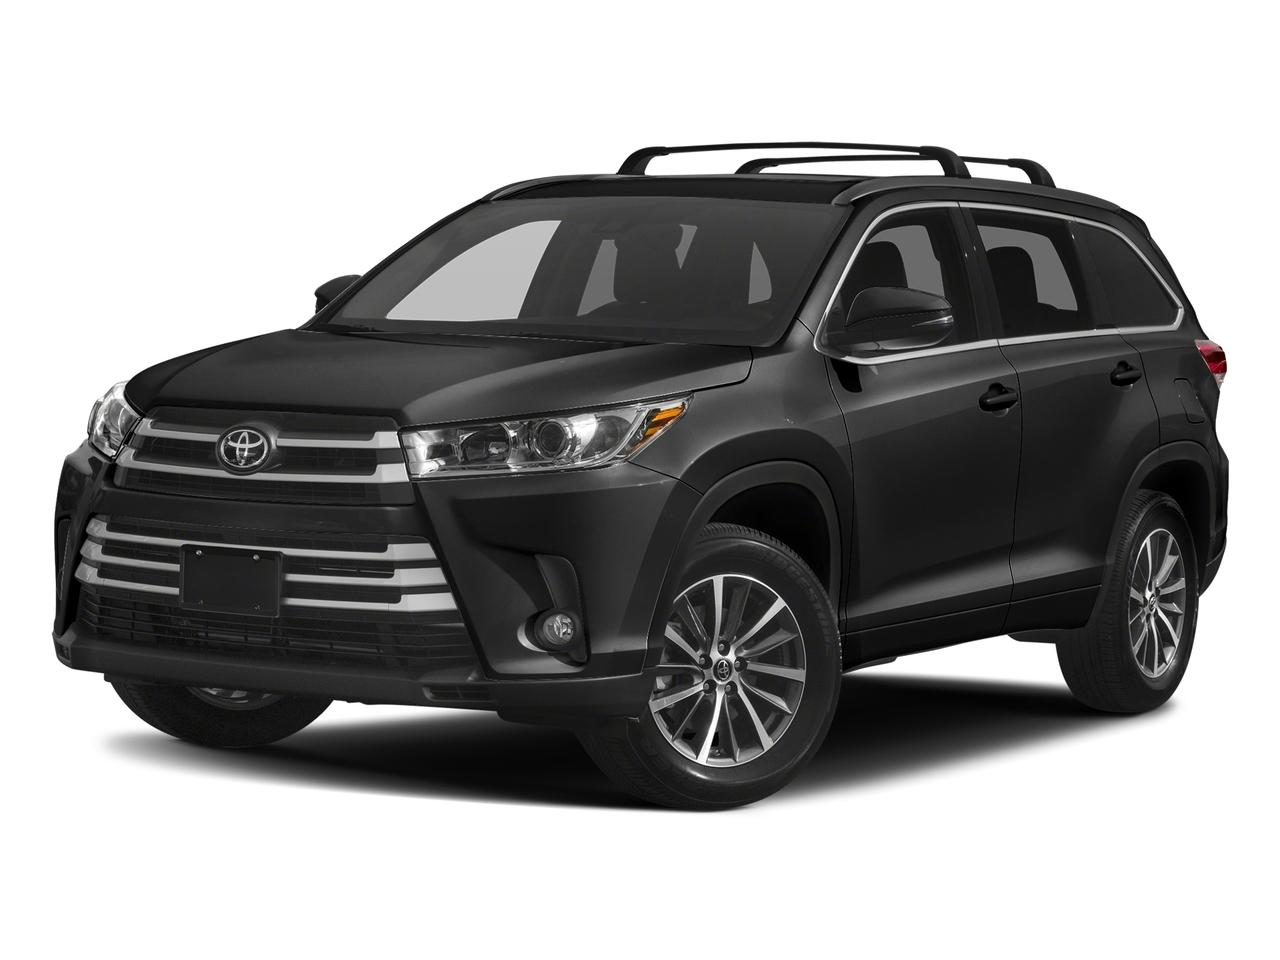 2017 Toyota Highlander Vehicle Photo in Prince Frederick, MD 20678